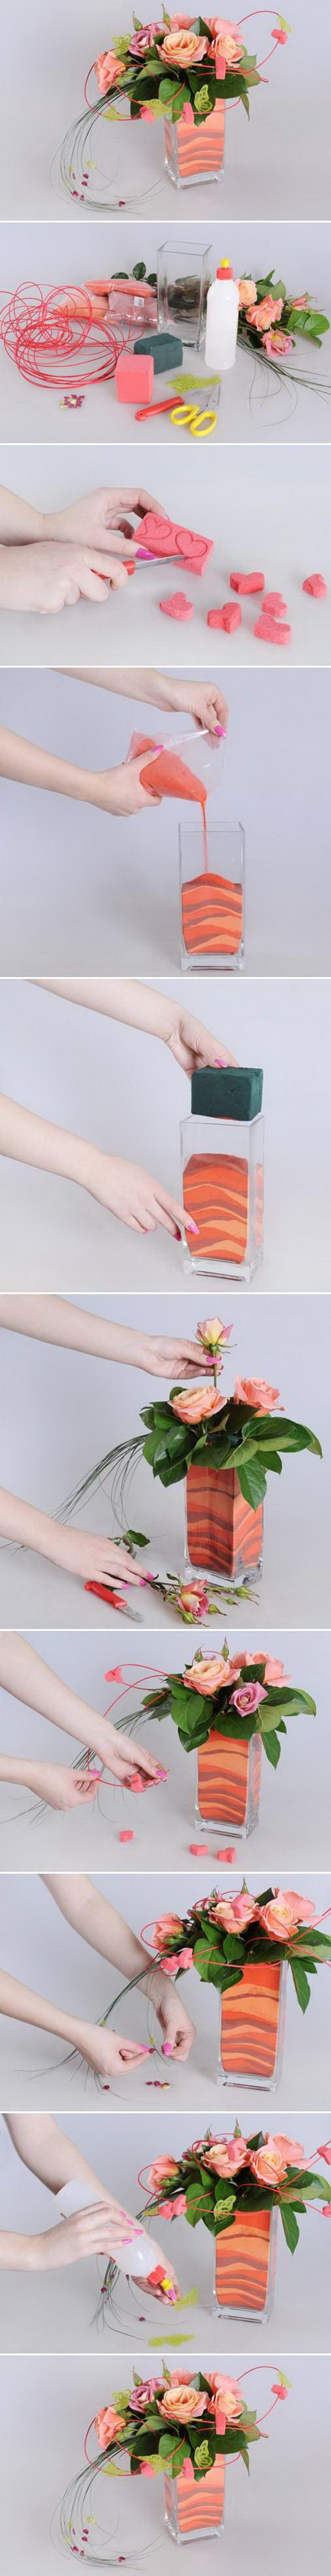 DIY Flower Vase Decoration. Finish off your flower arrangement with gradient colored sand for any décor. Look so striking and attractive when placed on formal entryways and corner tables.